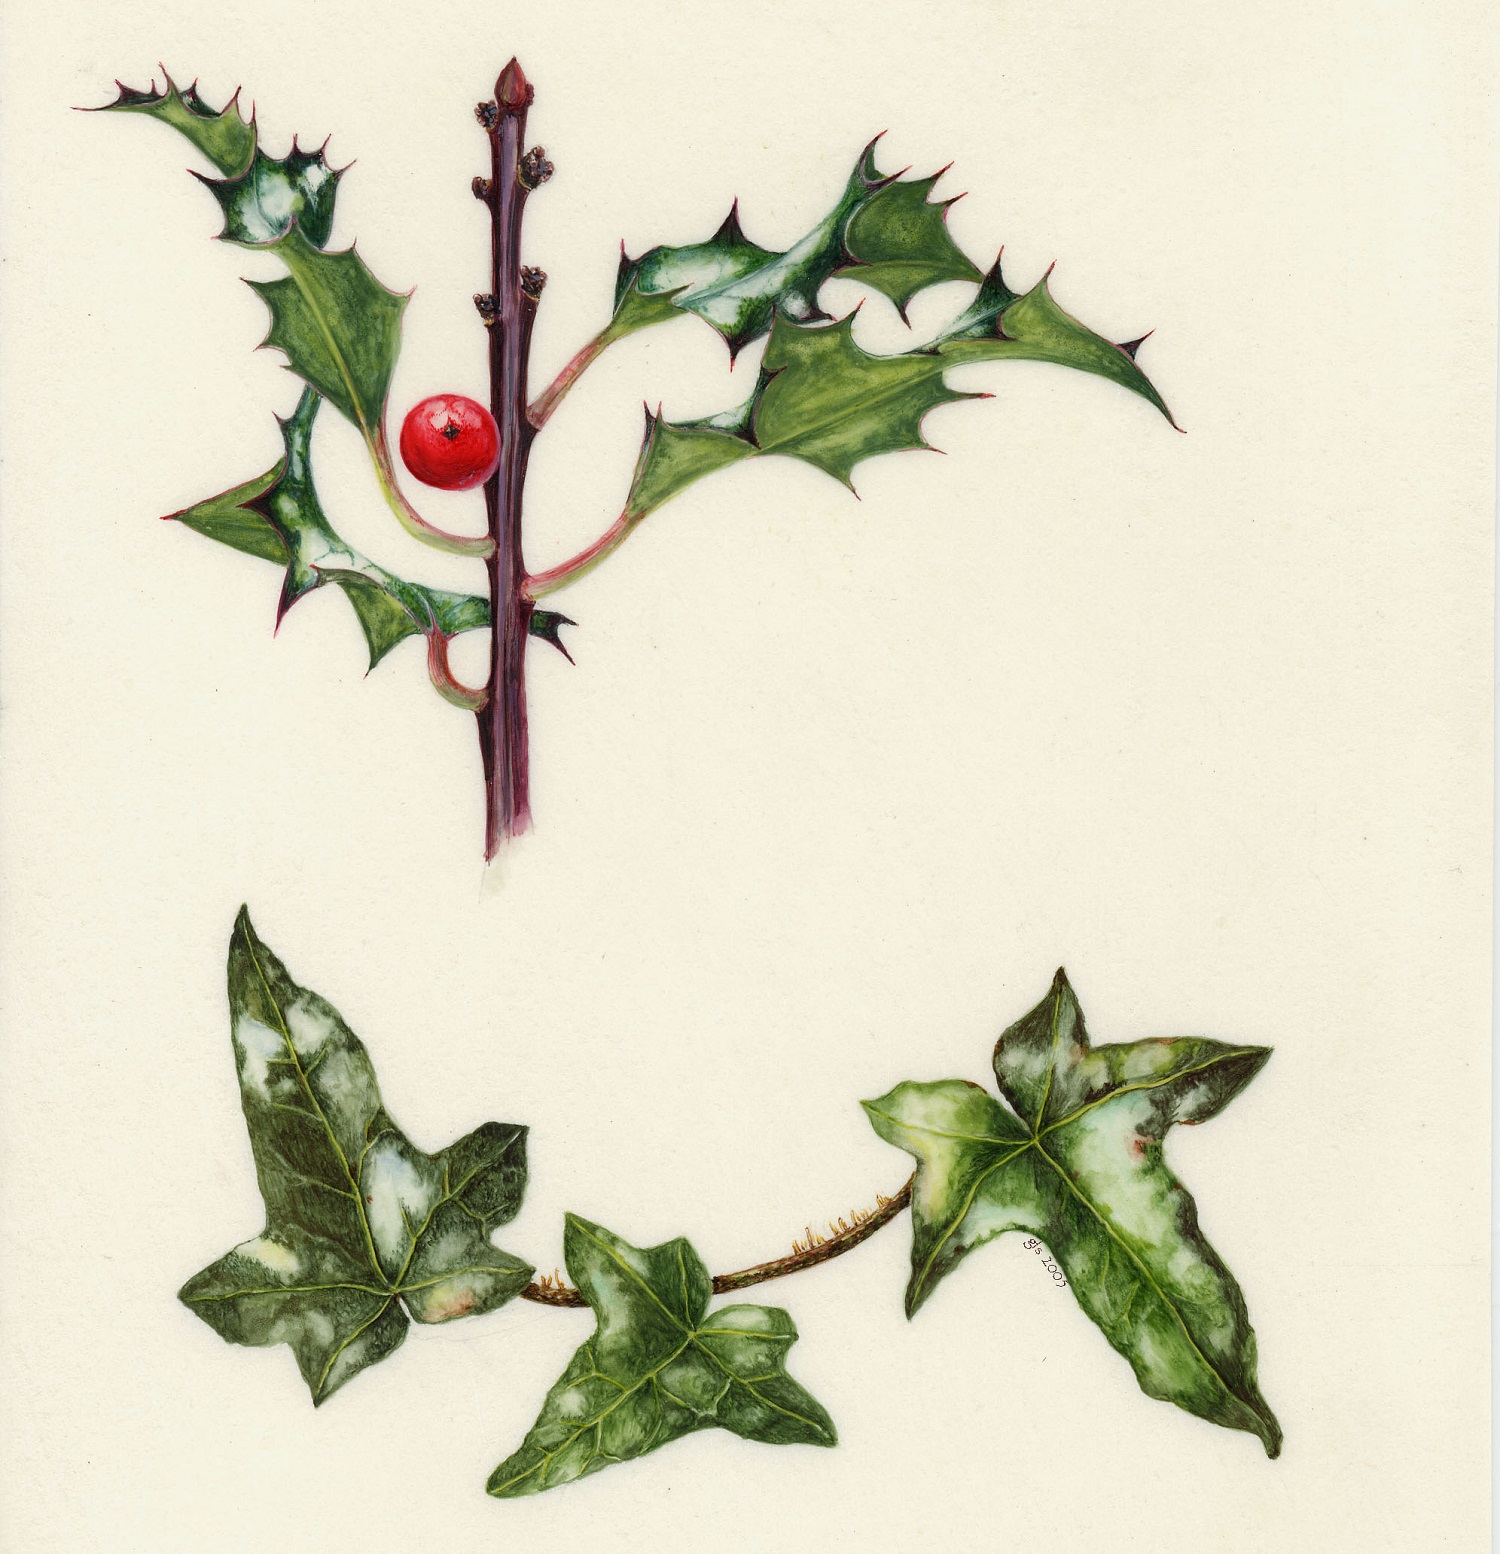 The Holly and the Ivy  watercolour on kelmscott vellum  30 x 33.5 cm  £360 (framed)